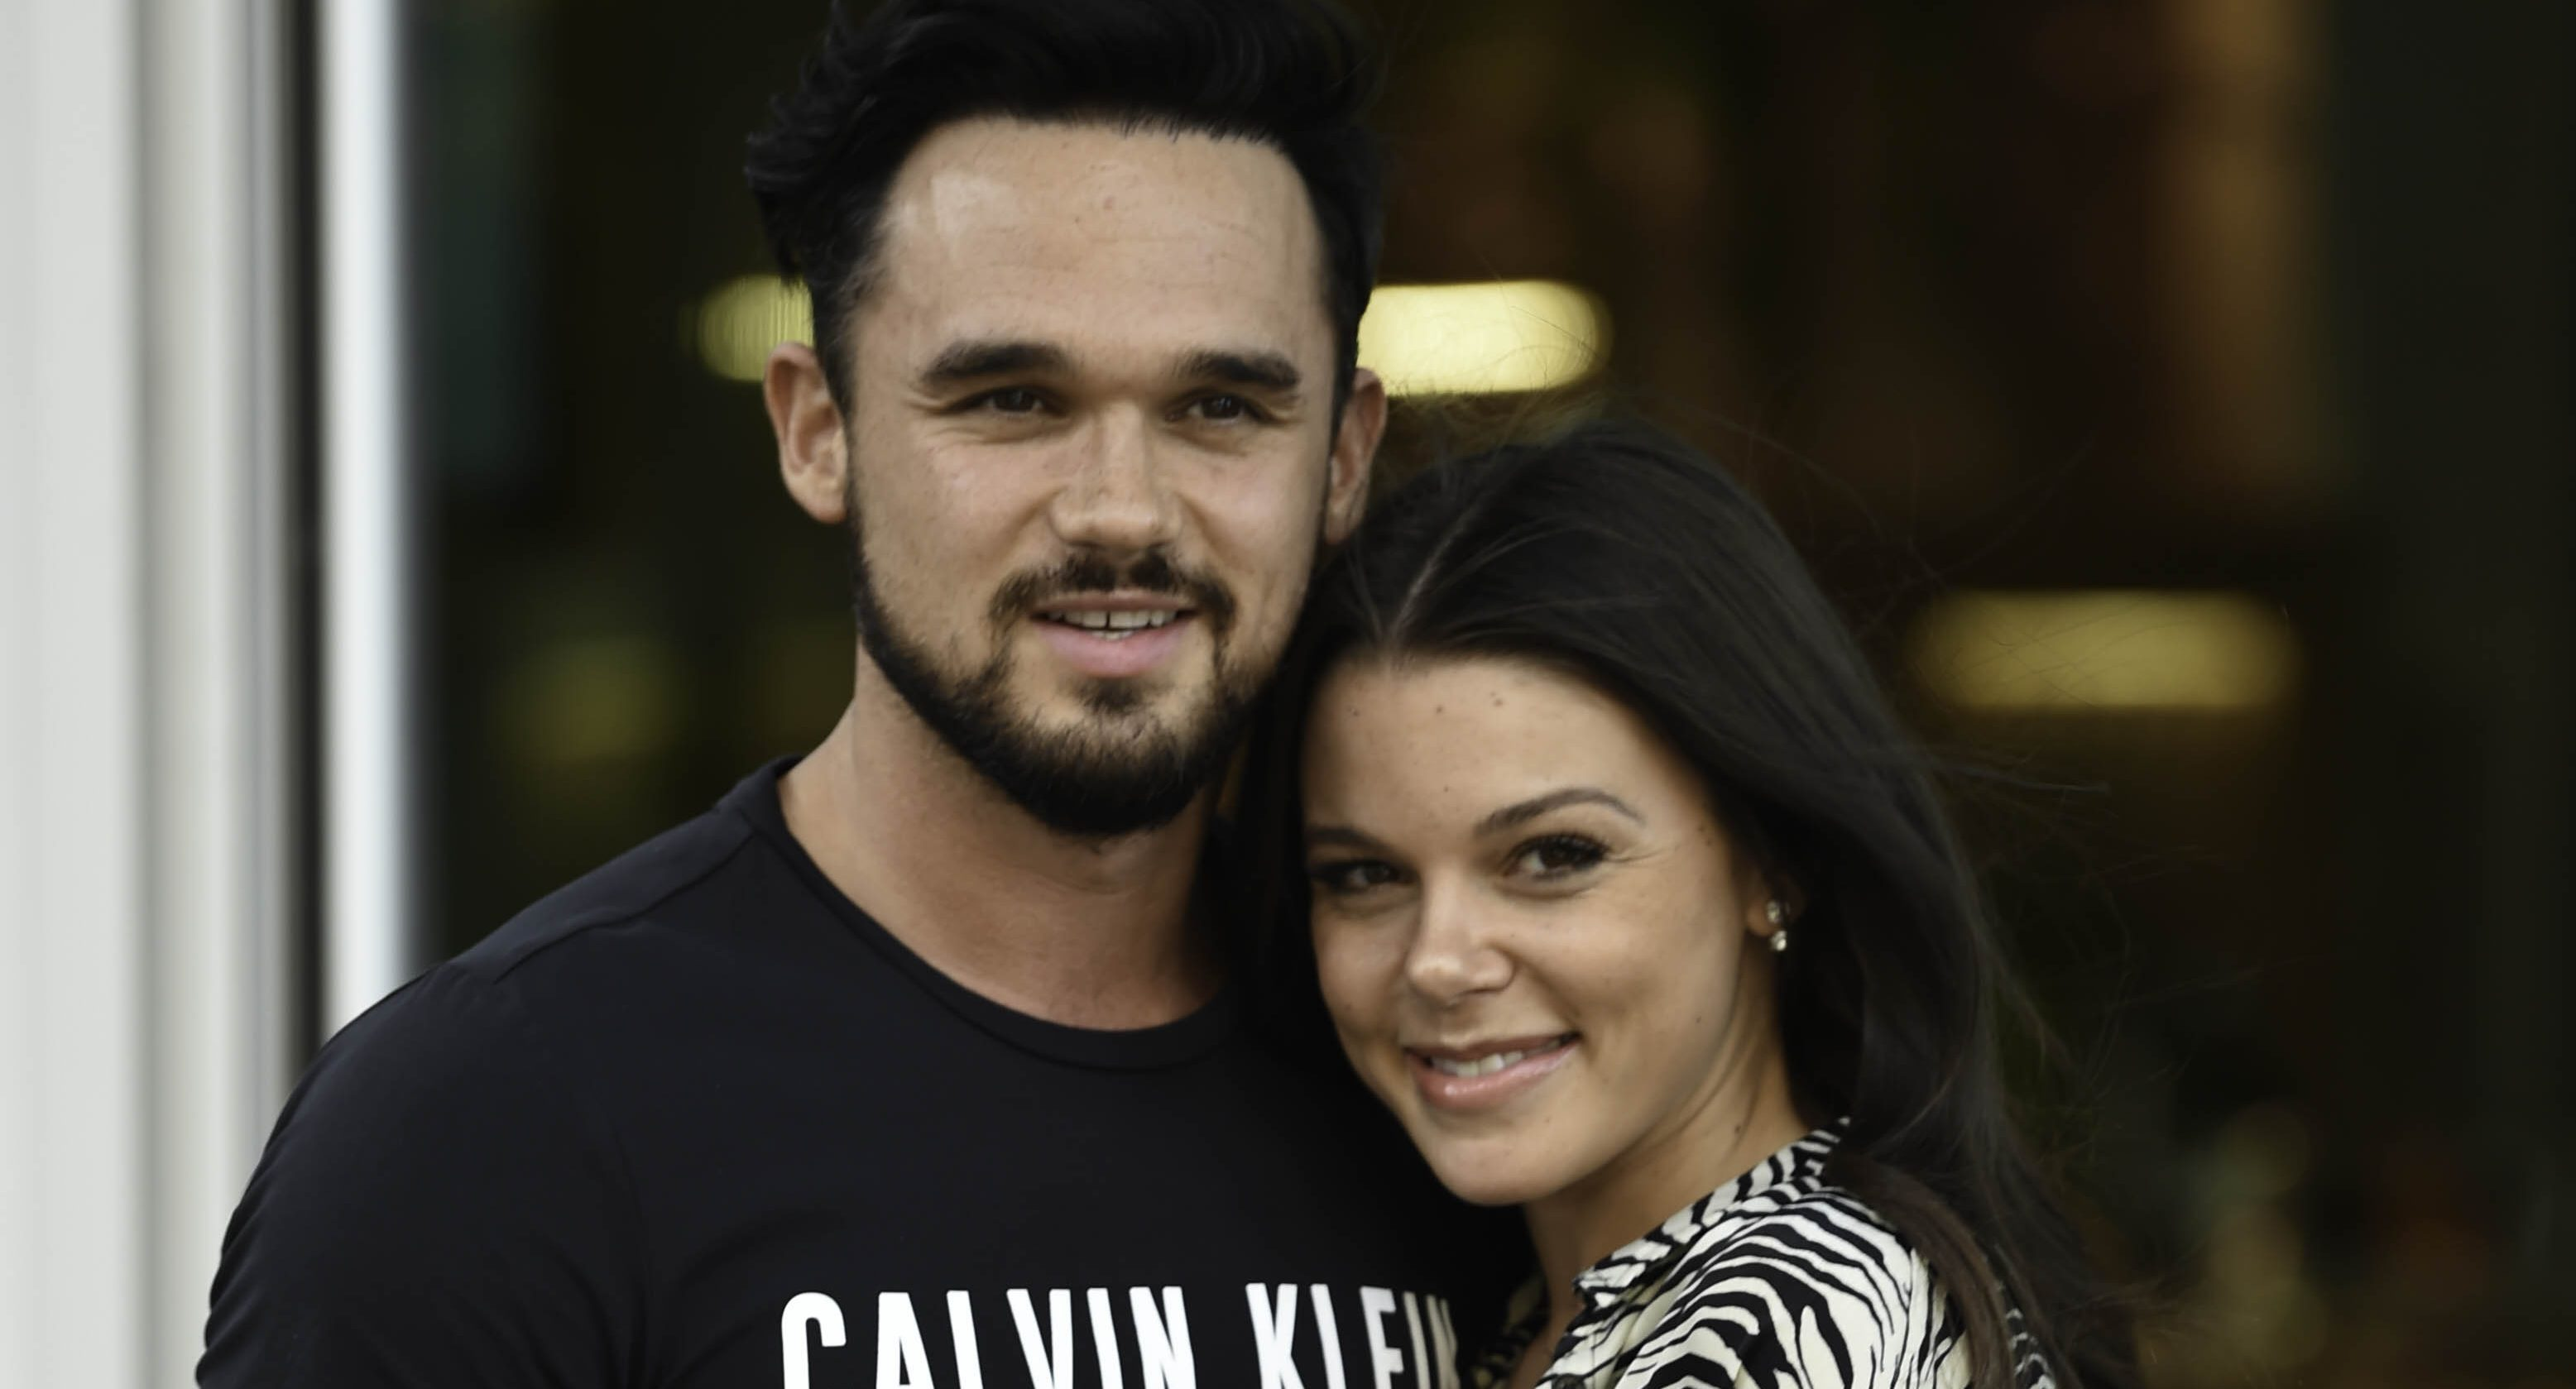 Gareth Gates vows he 'won't give up on us' while ex Faye Brookes enjoys a girlie night out